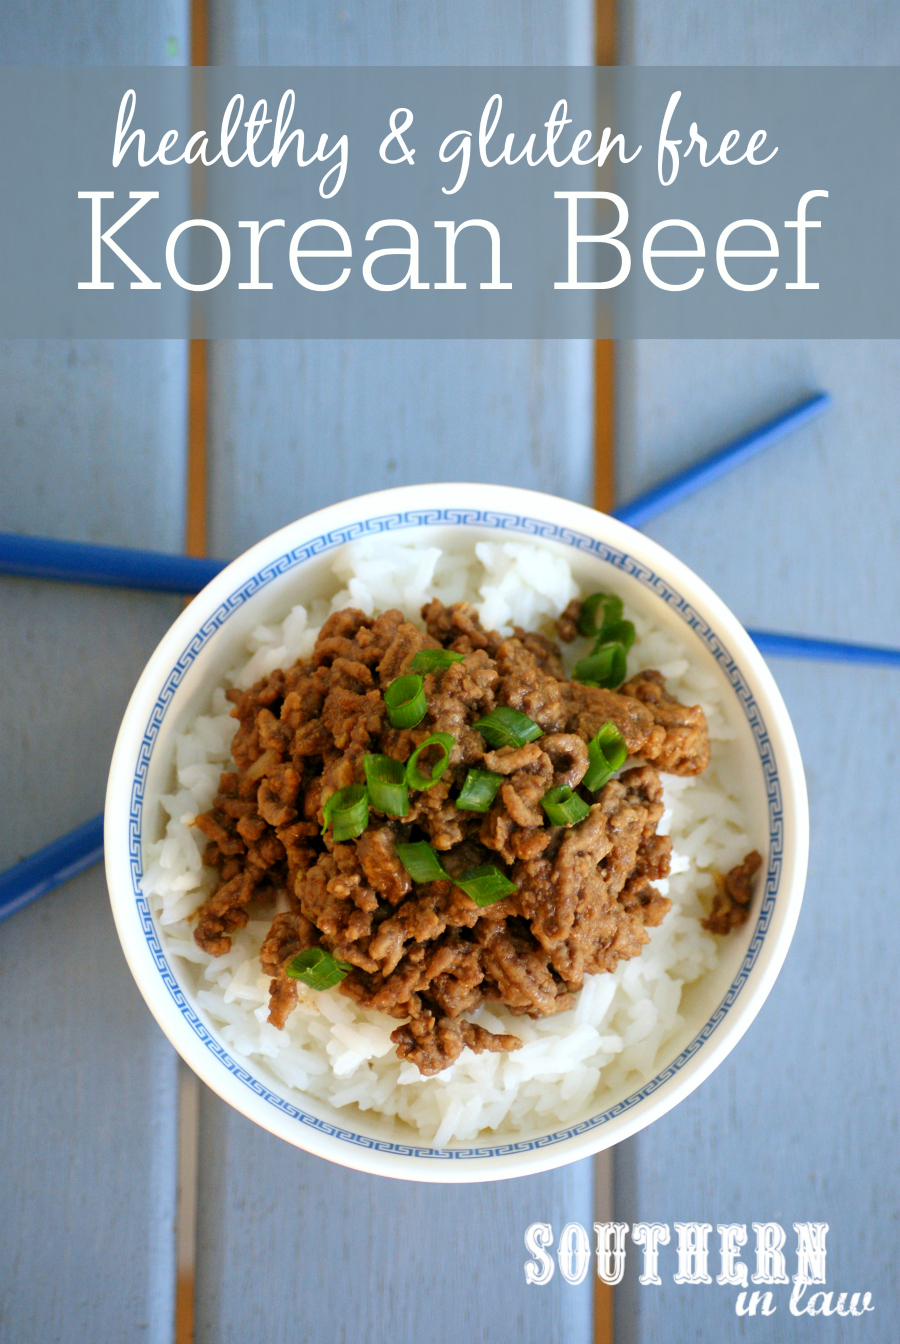 Southern in law recipe healthy korean beef stir fry healthy korean beef recipe stir fry with beef mince healthy ground beef recipes forumfinder Images